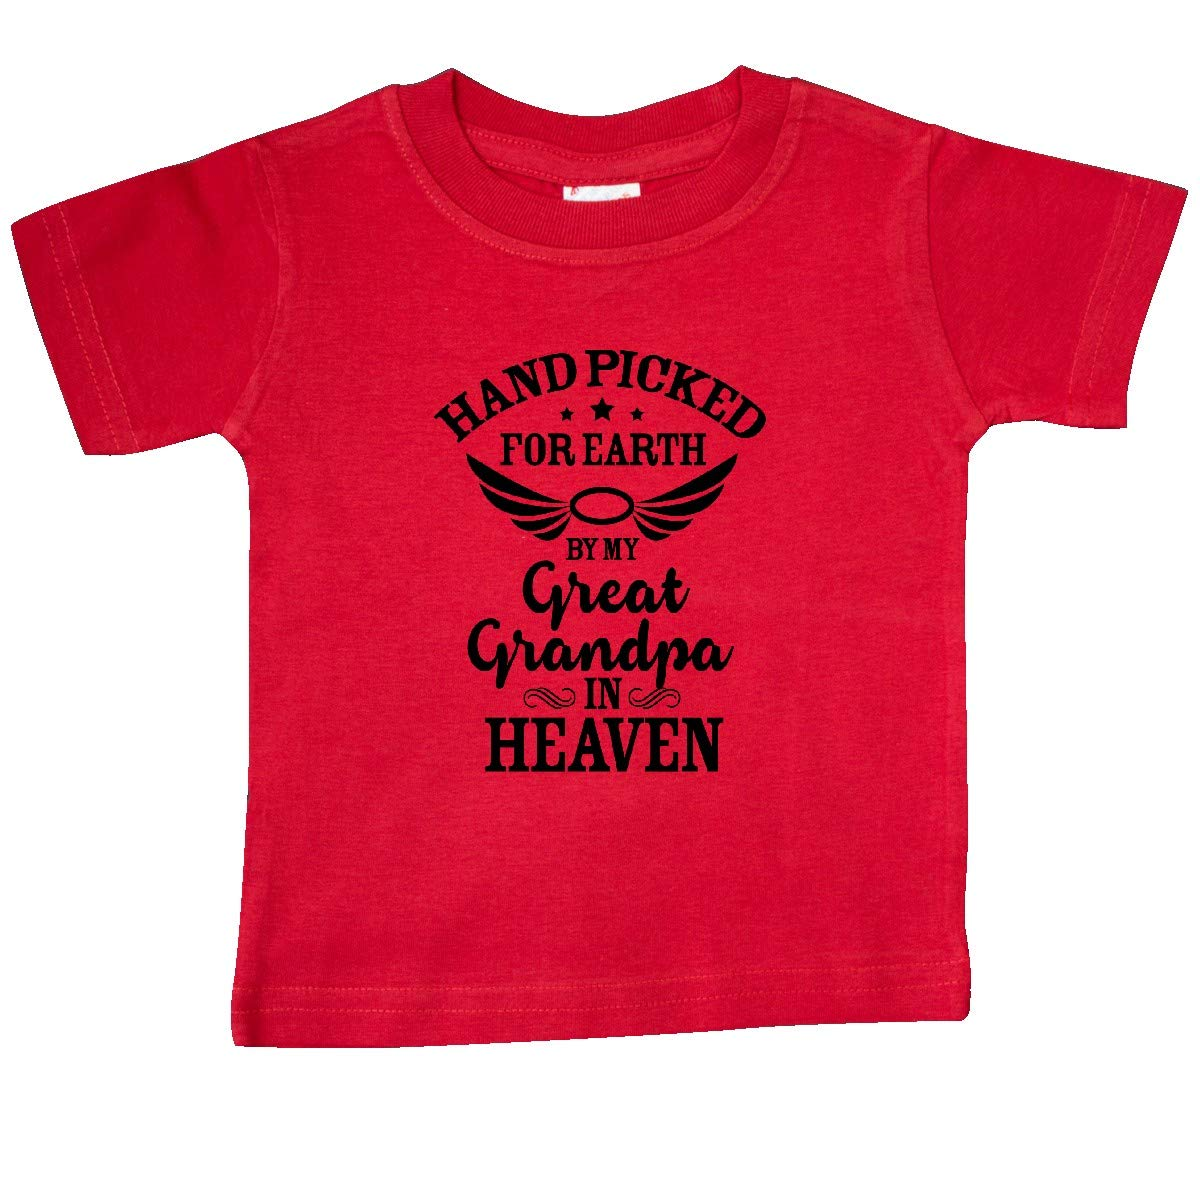 inktastic Handpicked for Earth by My Great Grandpa in Heaven Baby T-Shirt